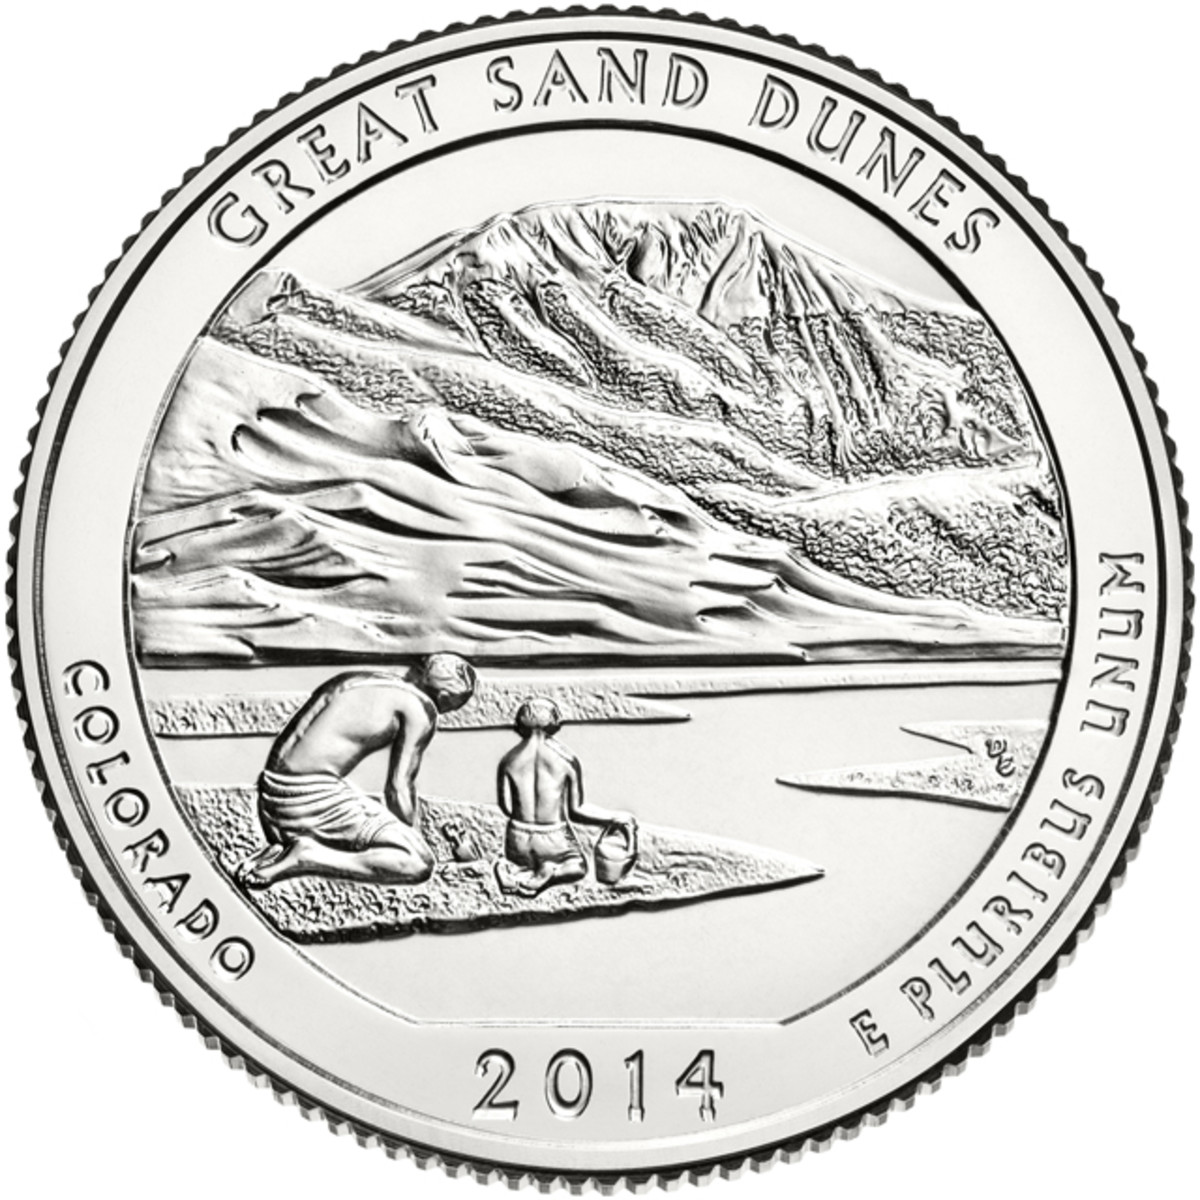 Reverse of the Great Sand Dunes National Park quarter